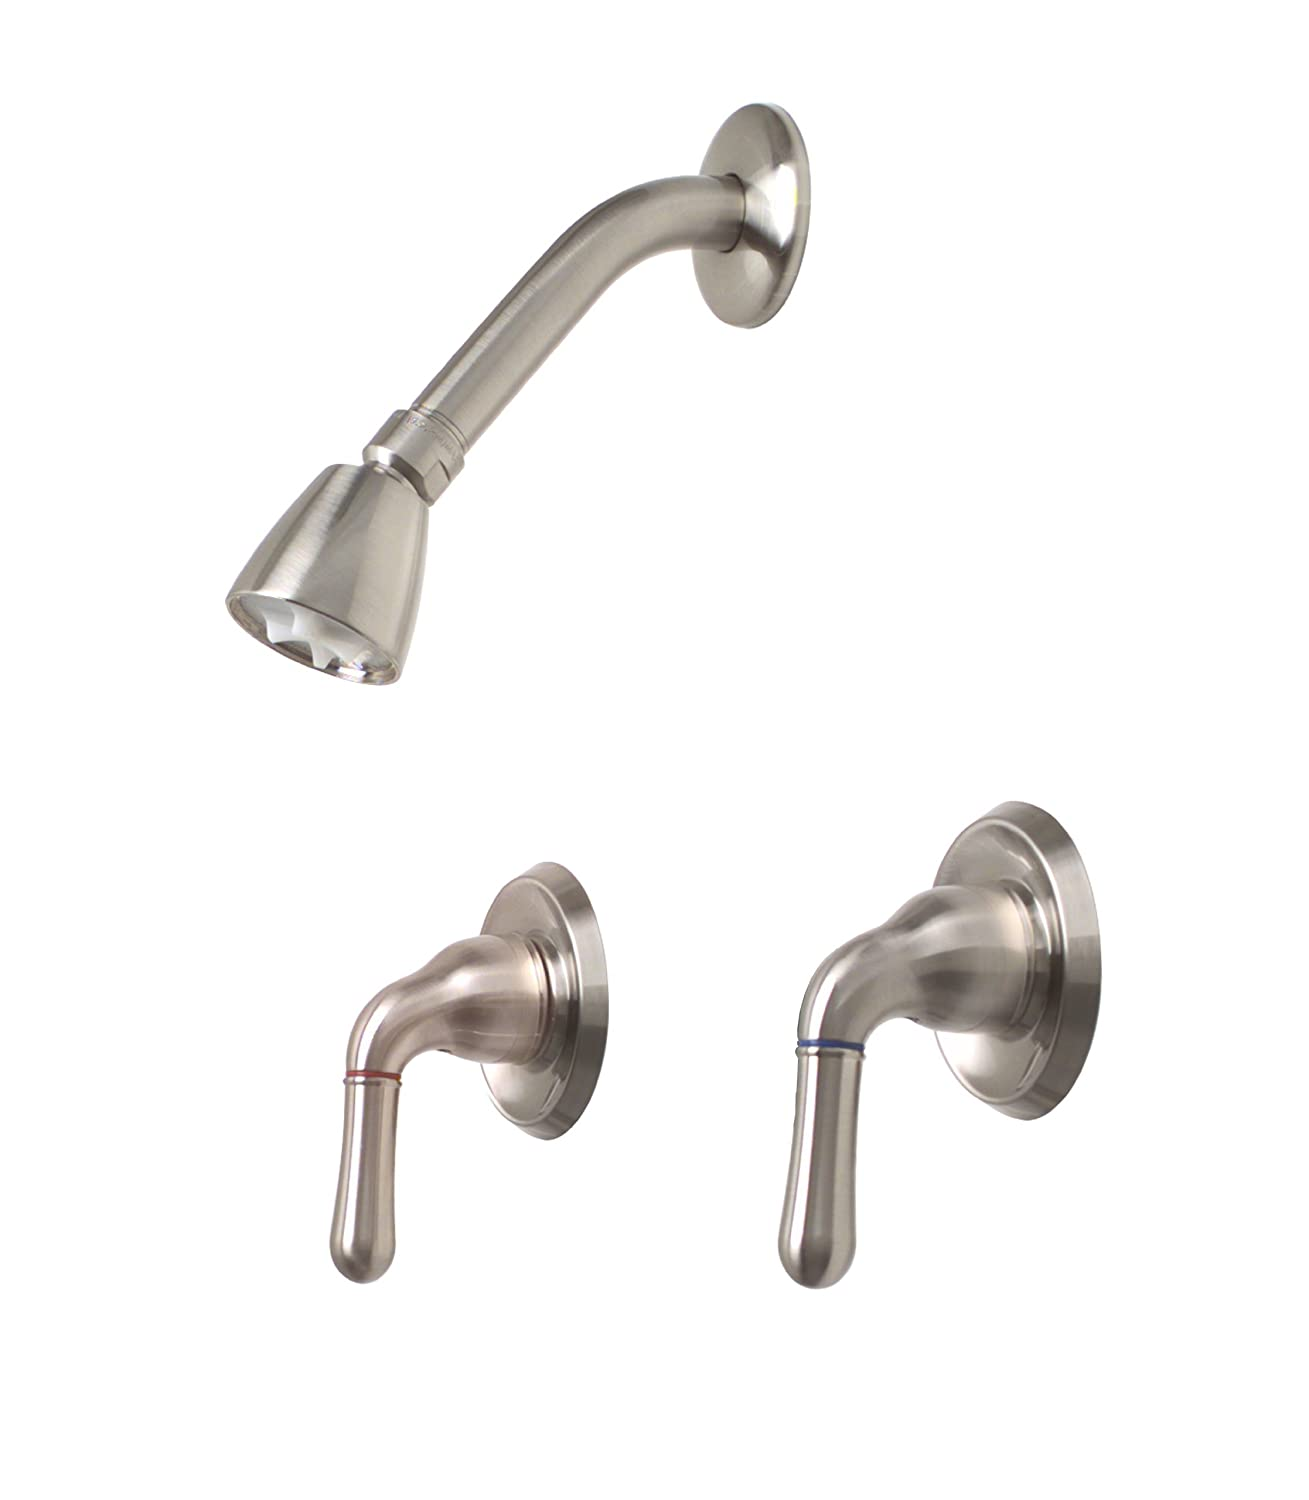 Premier 120188 Sanibel Two Handle Shower Faucet  Brushed Nickel   Tub And Shower  Faucets   Amazon comPremier 120188 Sanibel Two Handle Shower Faucet  Brushed Nickel  . 2 Knob Shower Faucet. Home Design Ideas